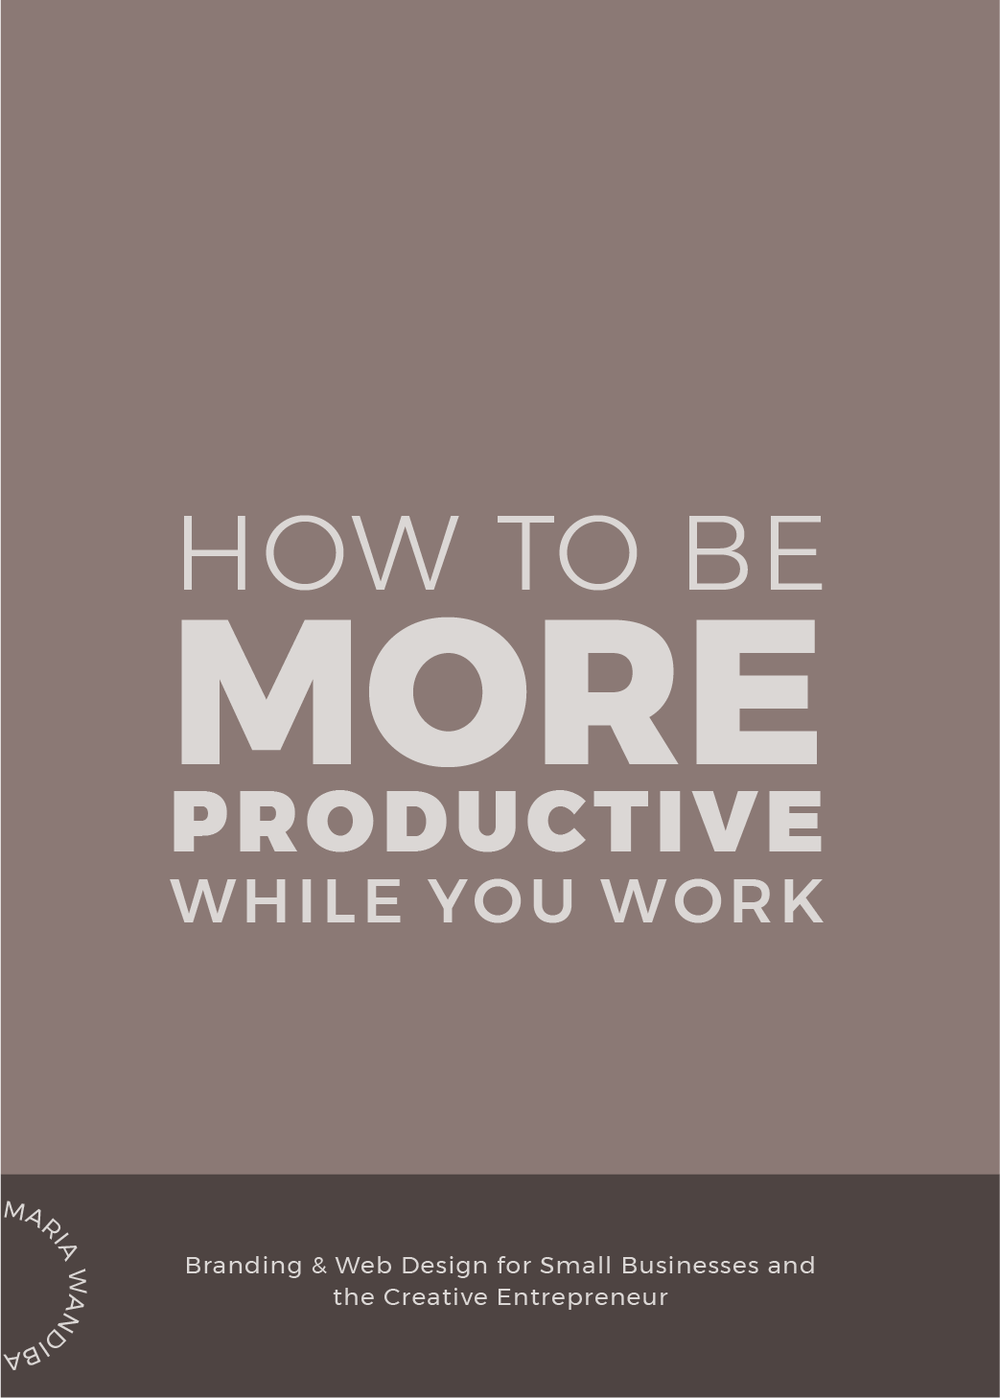 how-to-be-more-productive-while-you-work.png